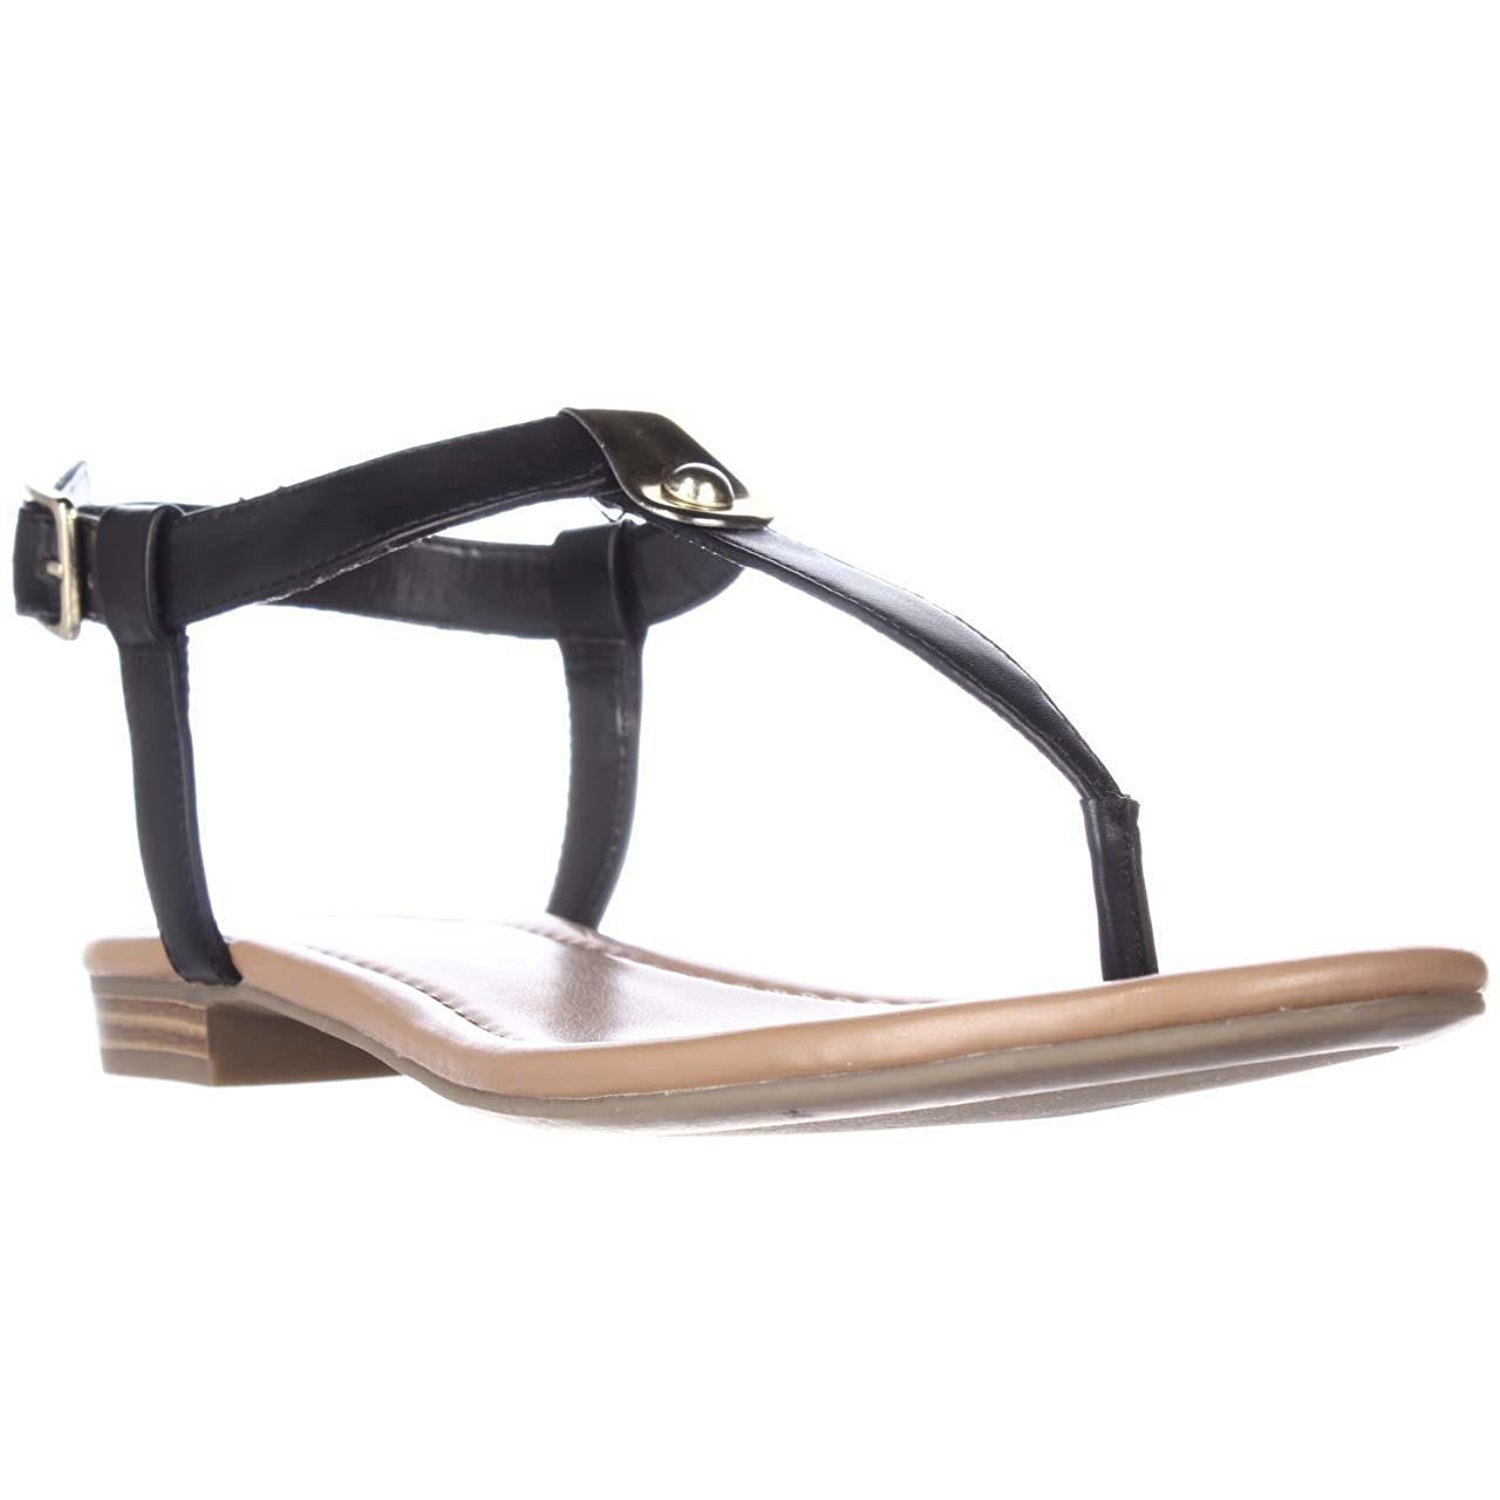 Style & Co. Womens Baileyy Open Toe Casual Ankle Strap Sandals, Black, 8.0M